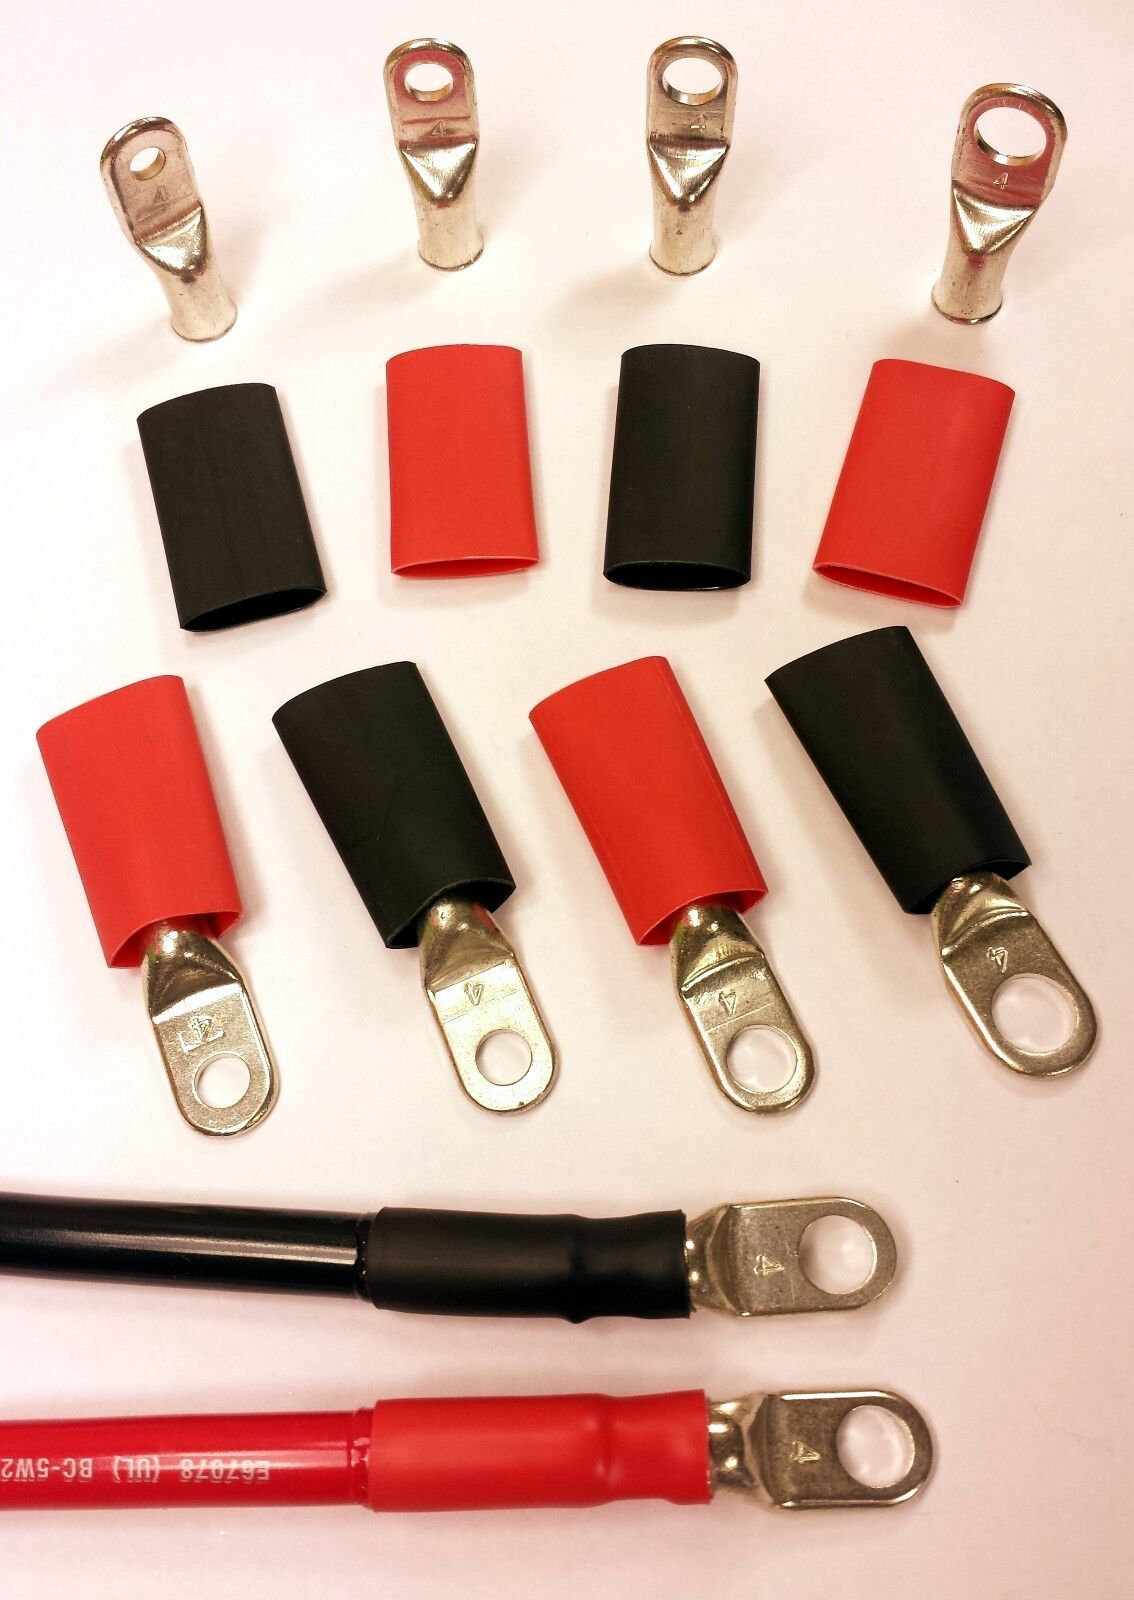 4 Awg Gauge Cable Lugs Ring Terminals Battery Wire